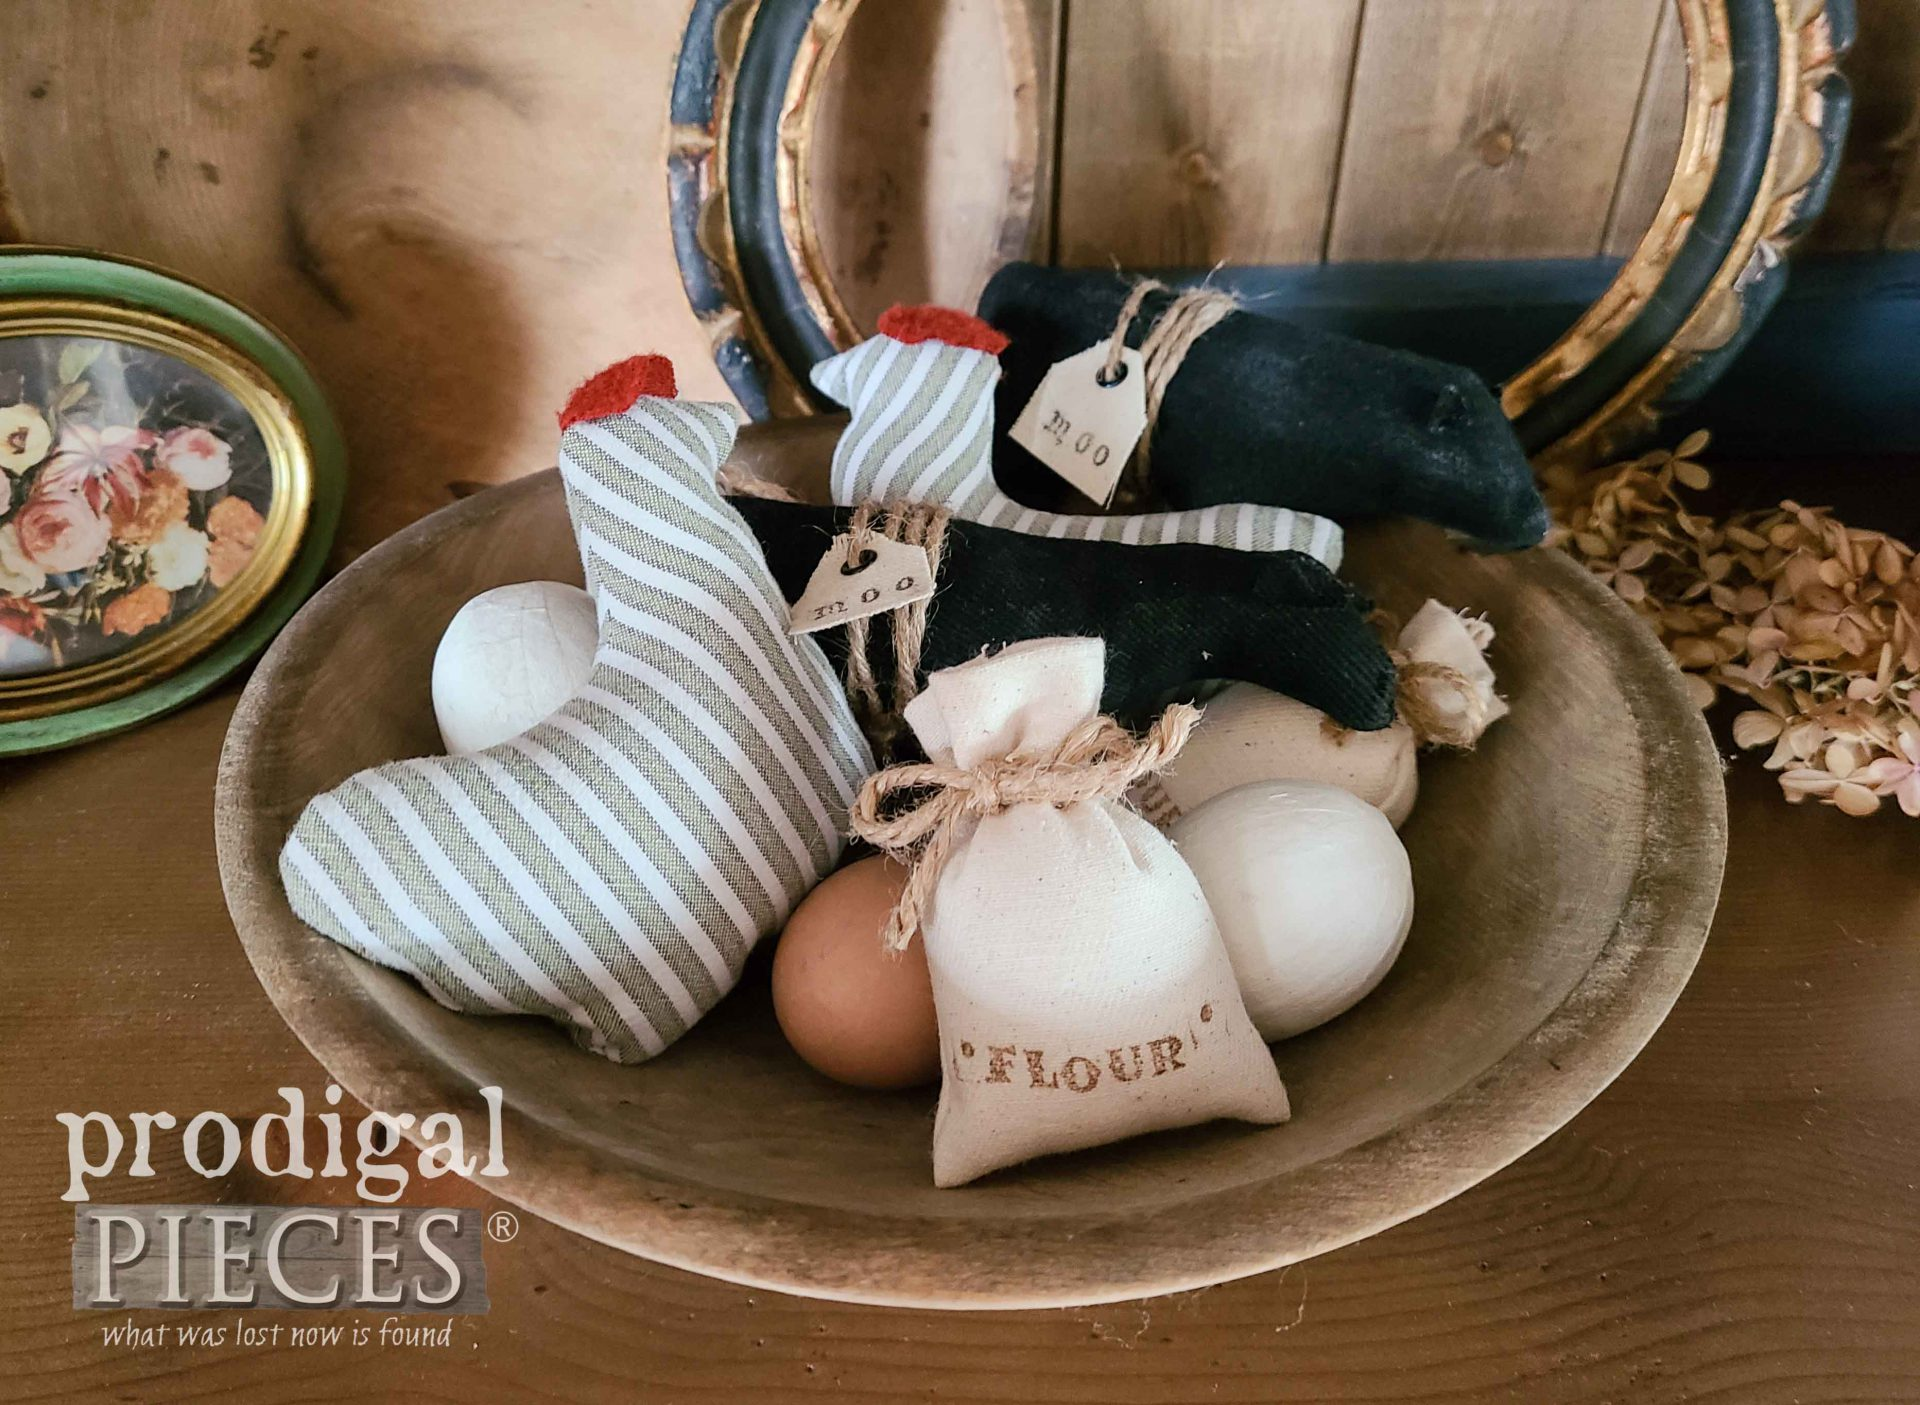 Upcycled Mix of Farmhouse Bowl Fillers by Larissa of Prodigal Pieces | prodigalpieces.com #prodigalpieces #farmhouse #handmade #crafts #refashion #diy